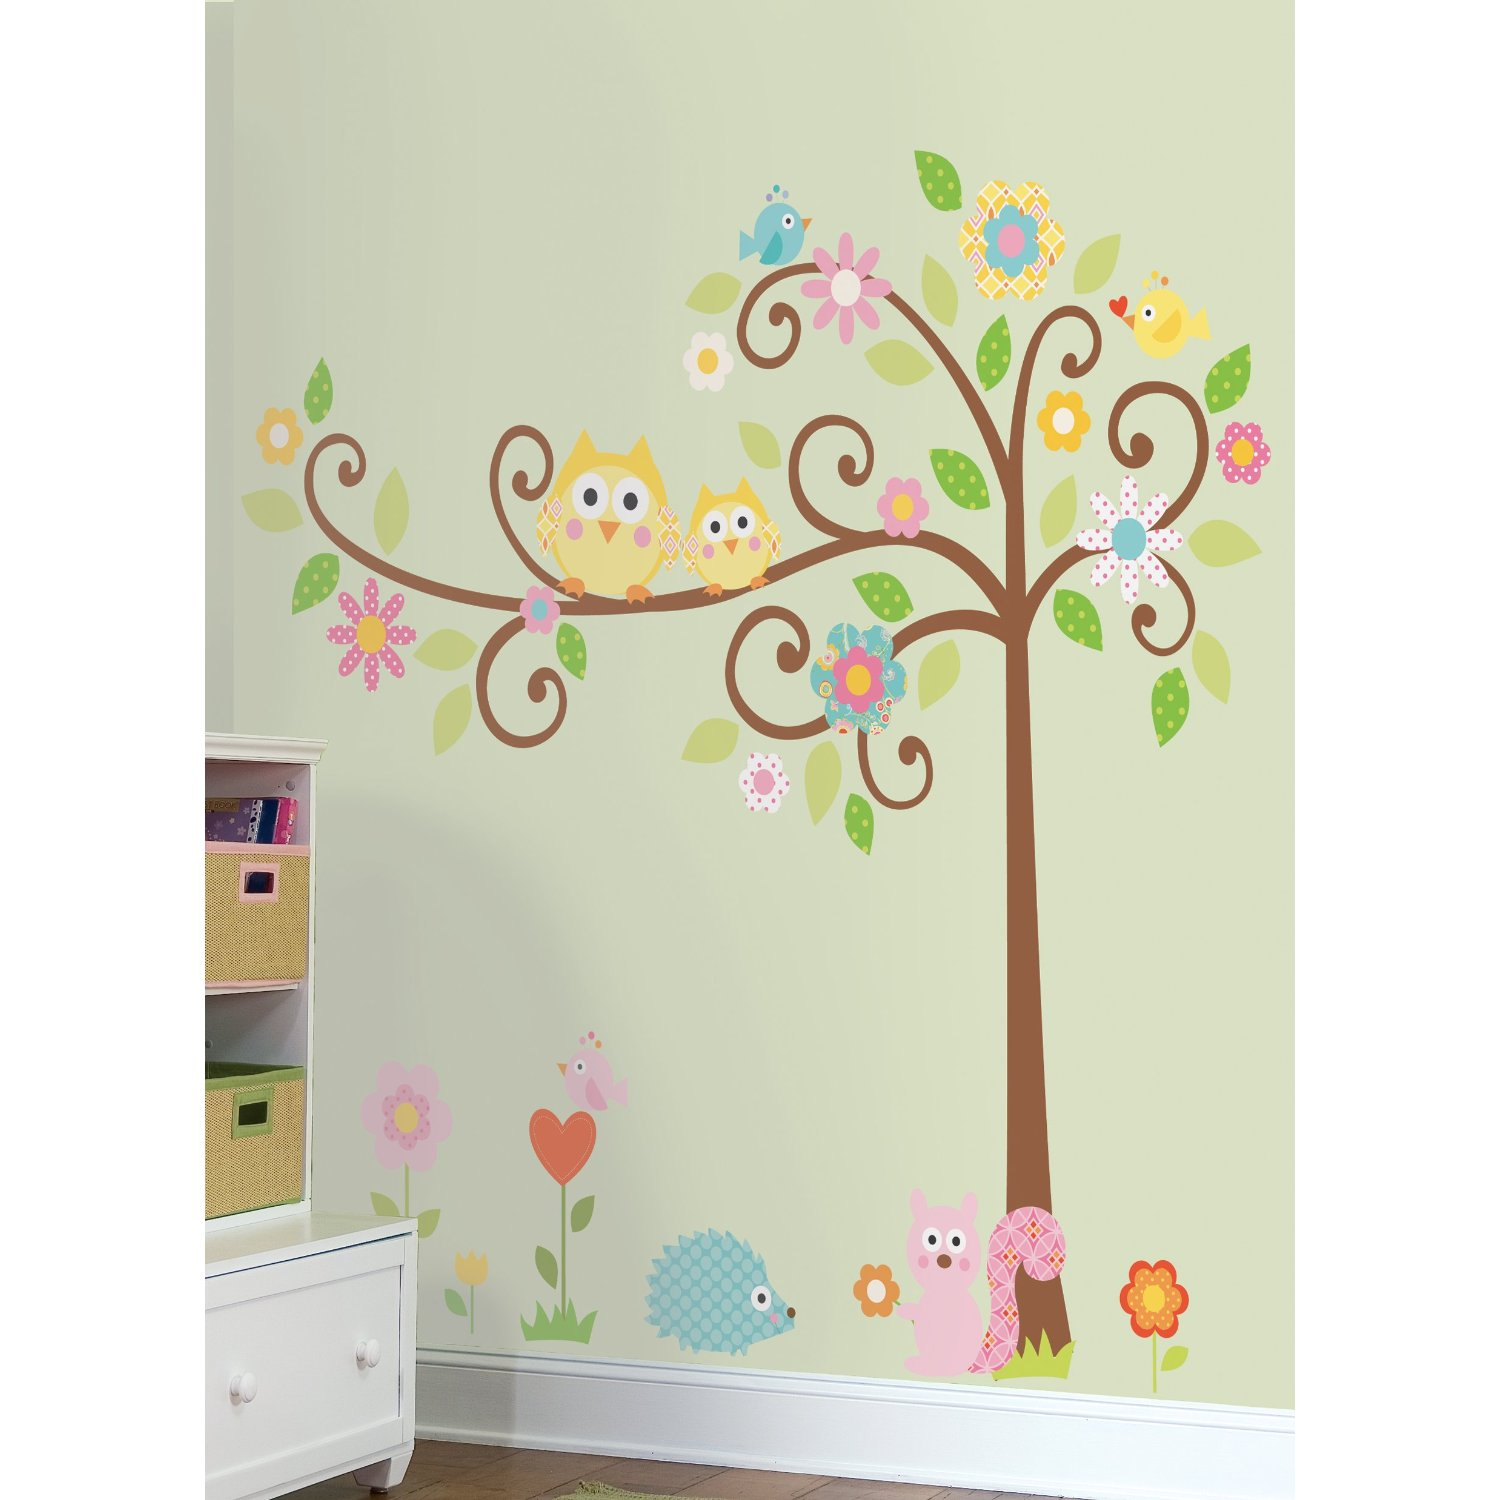 Nursery room ideas nursery wall decals for Children room mural